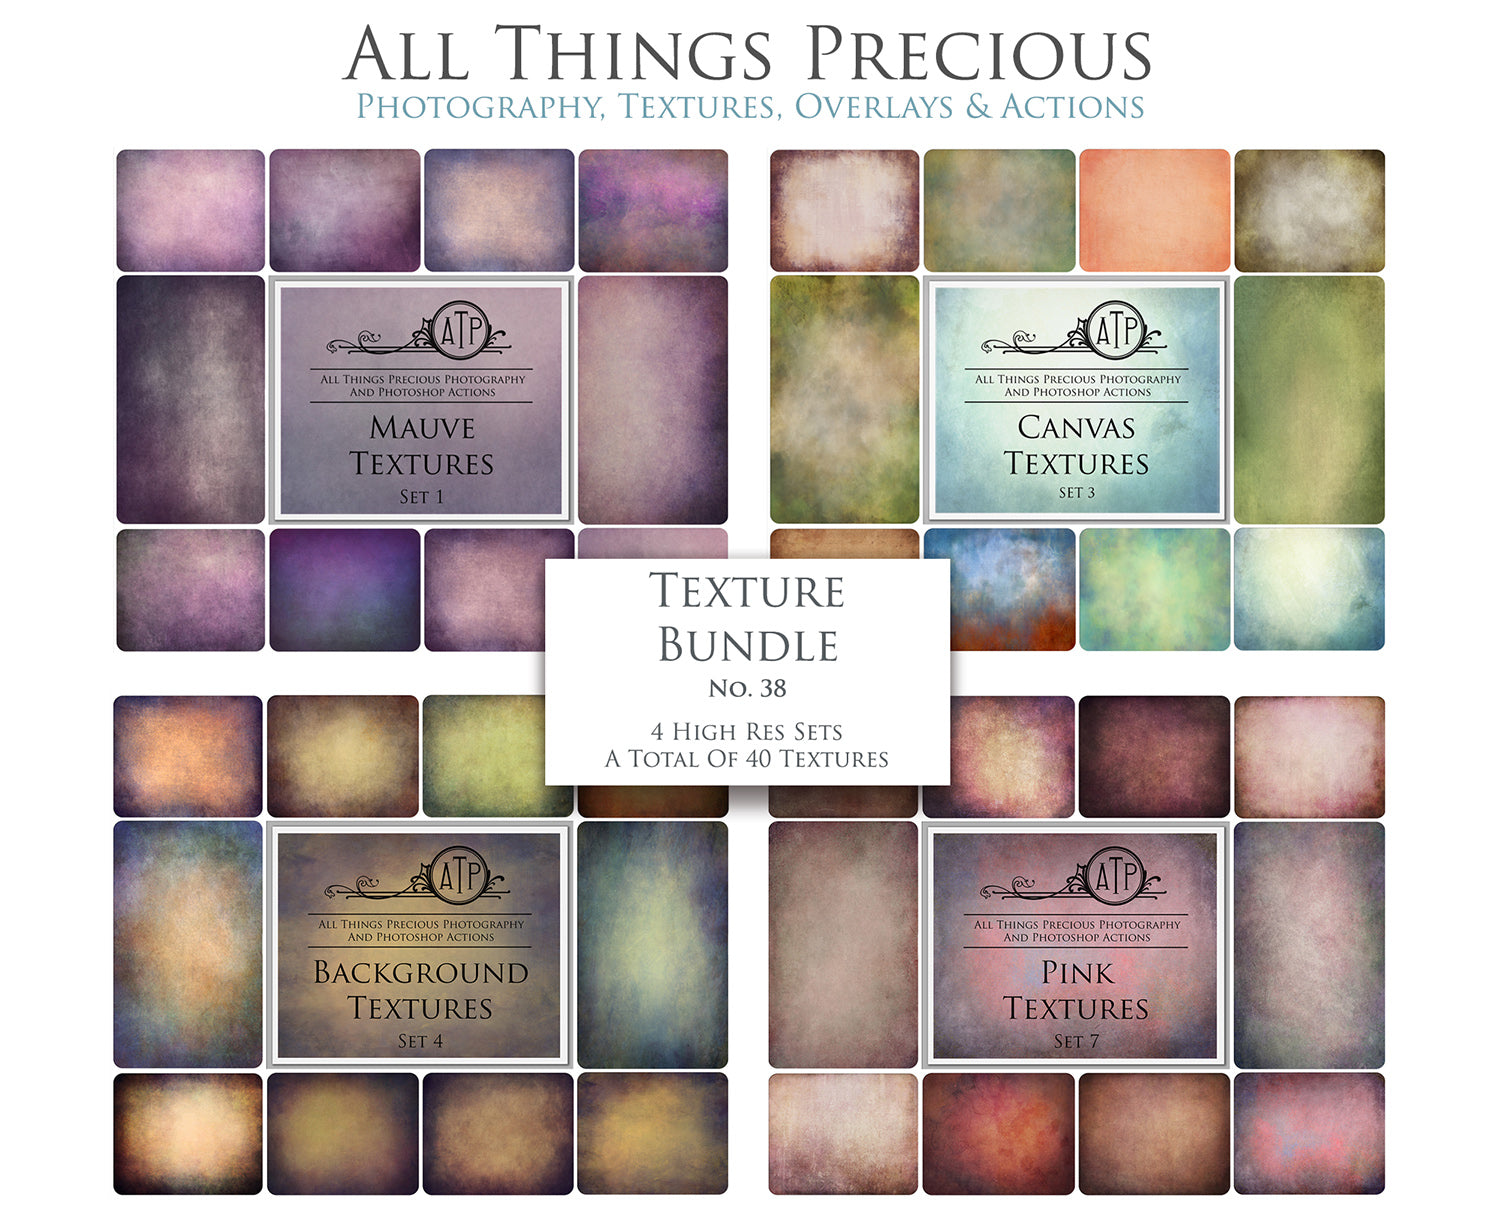 TEXTURE BUNDLE / No. 38